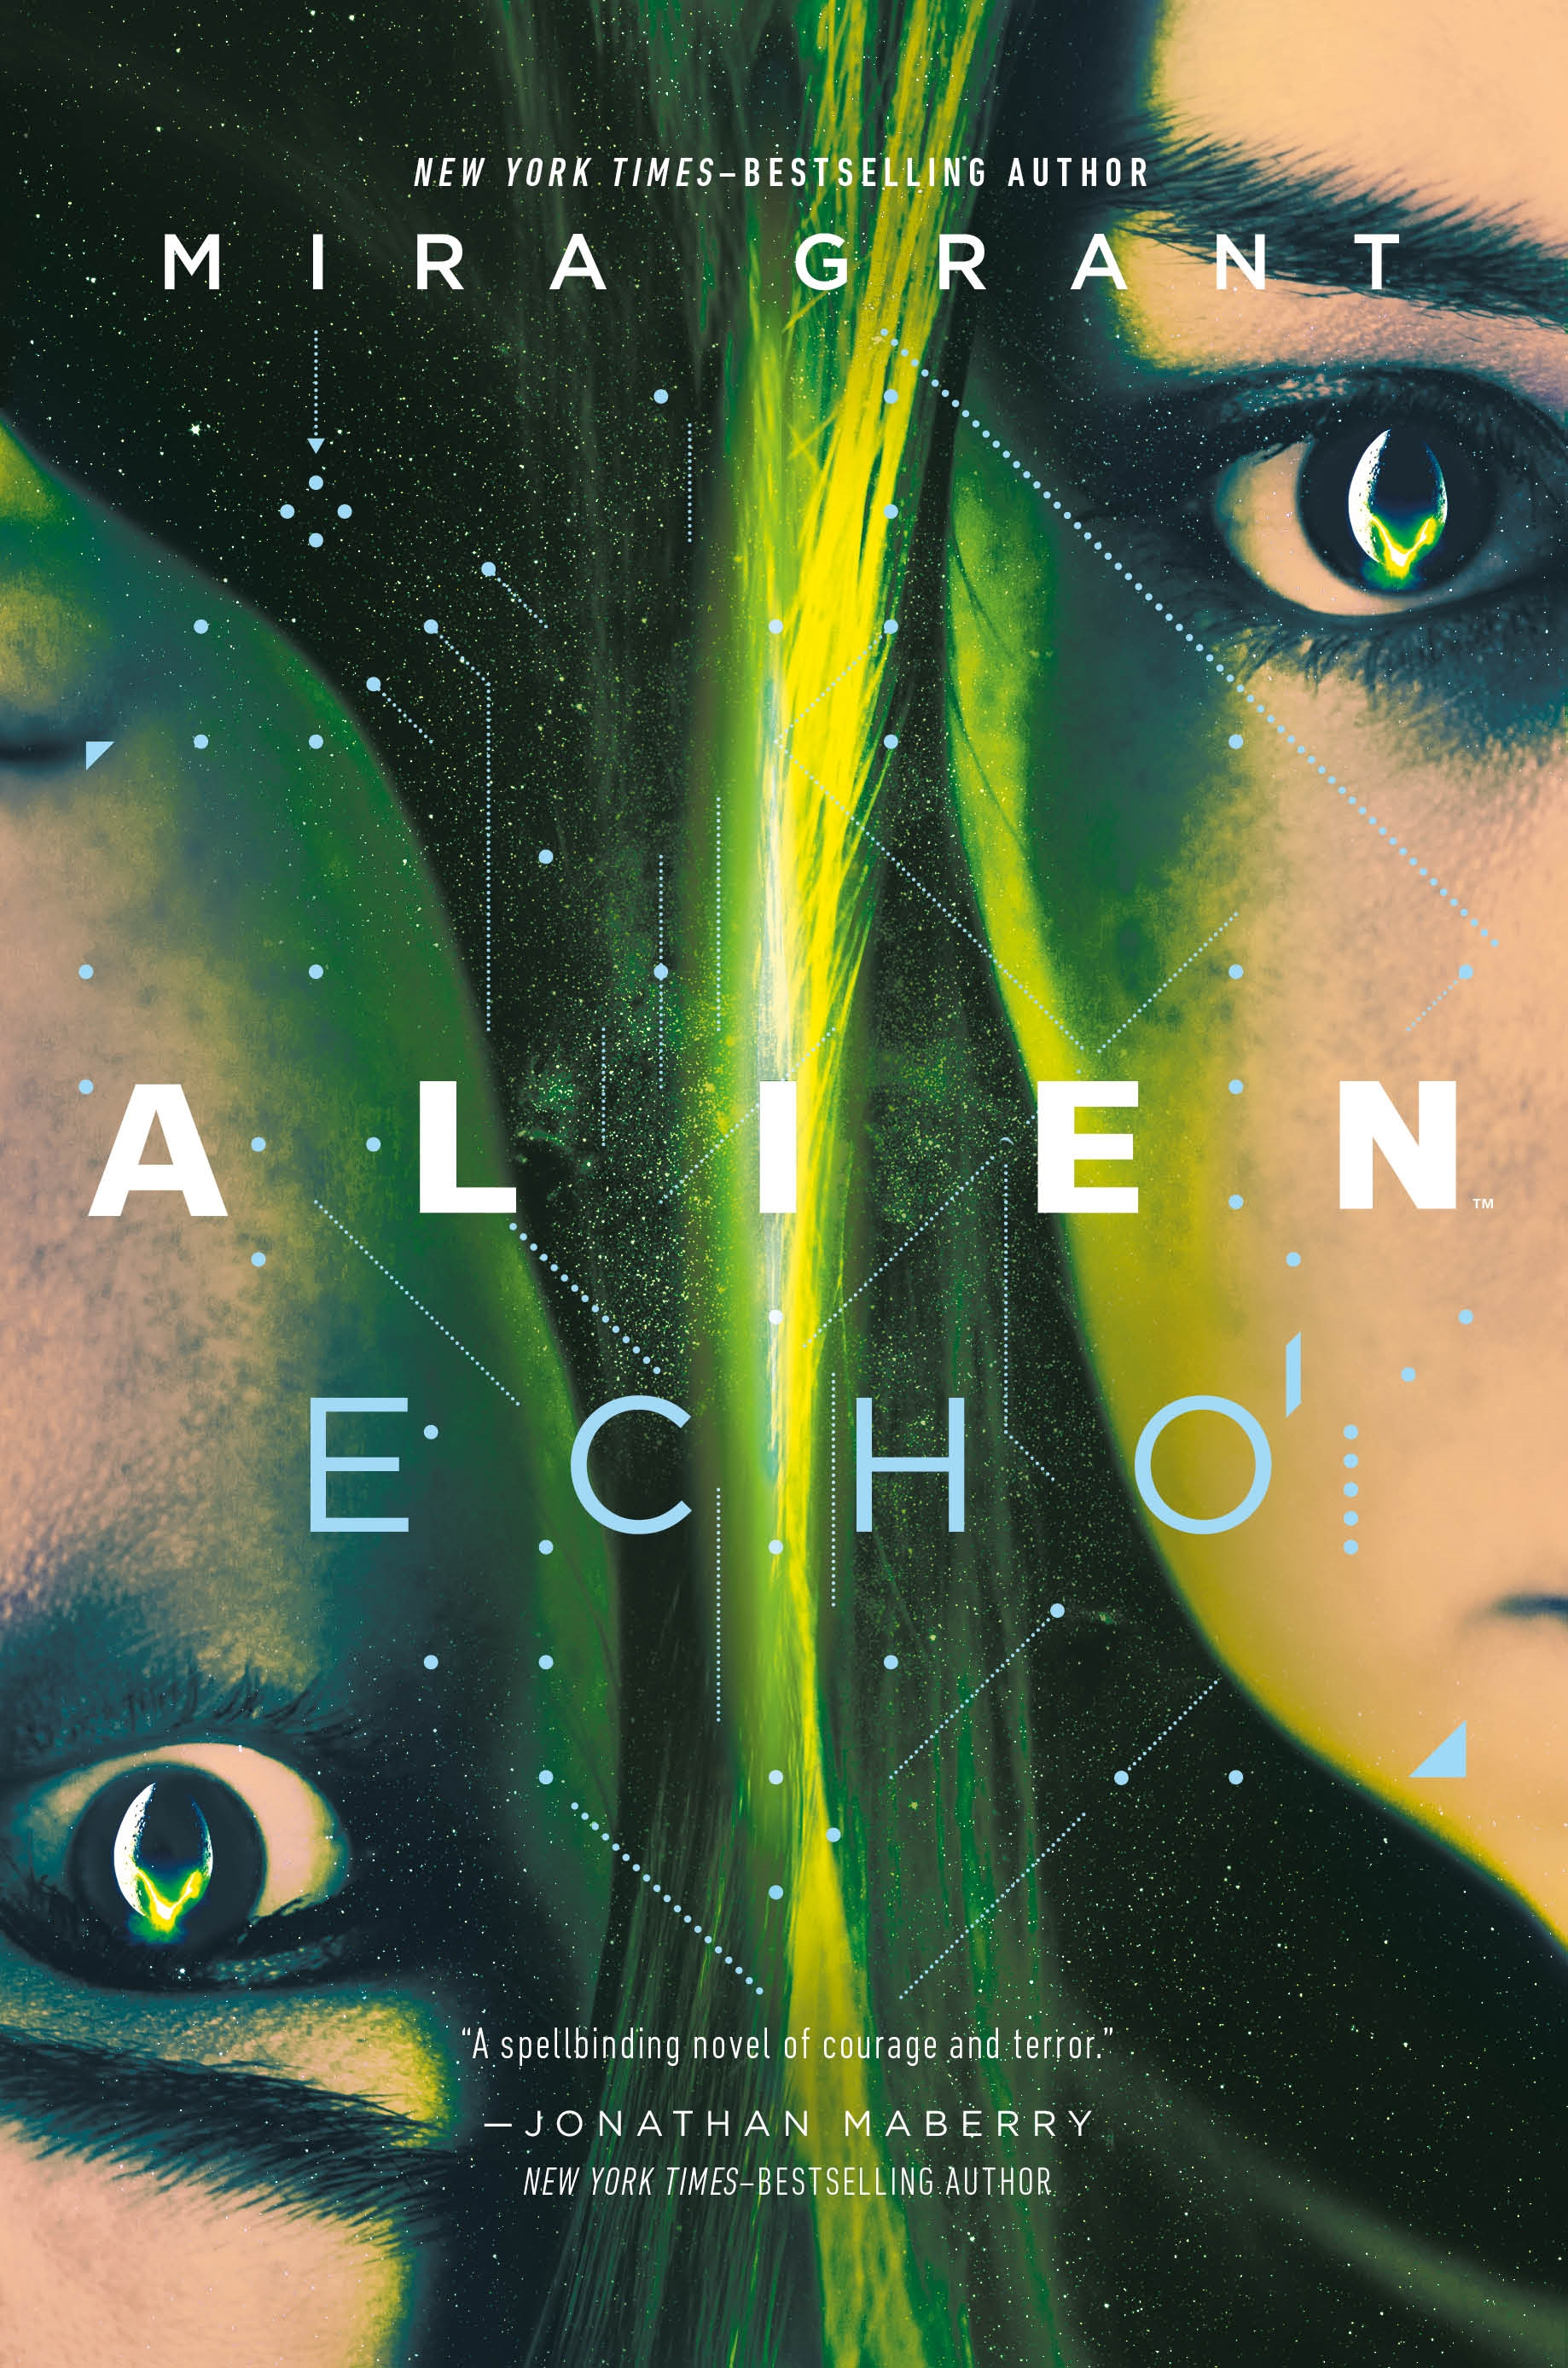 Alien echo cover image